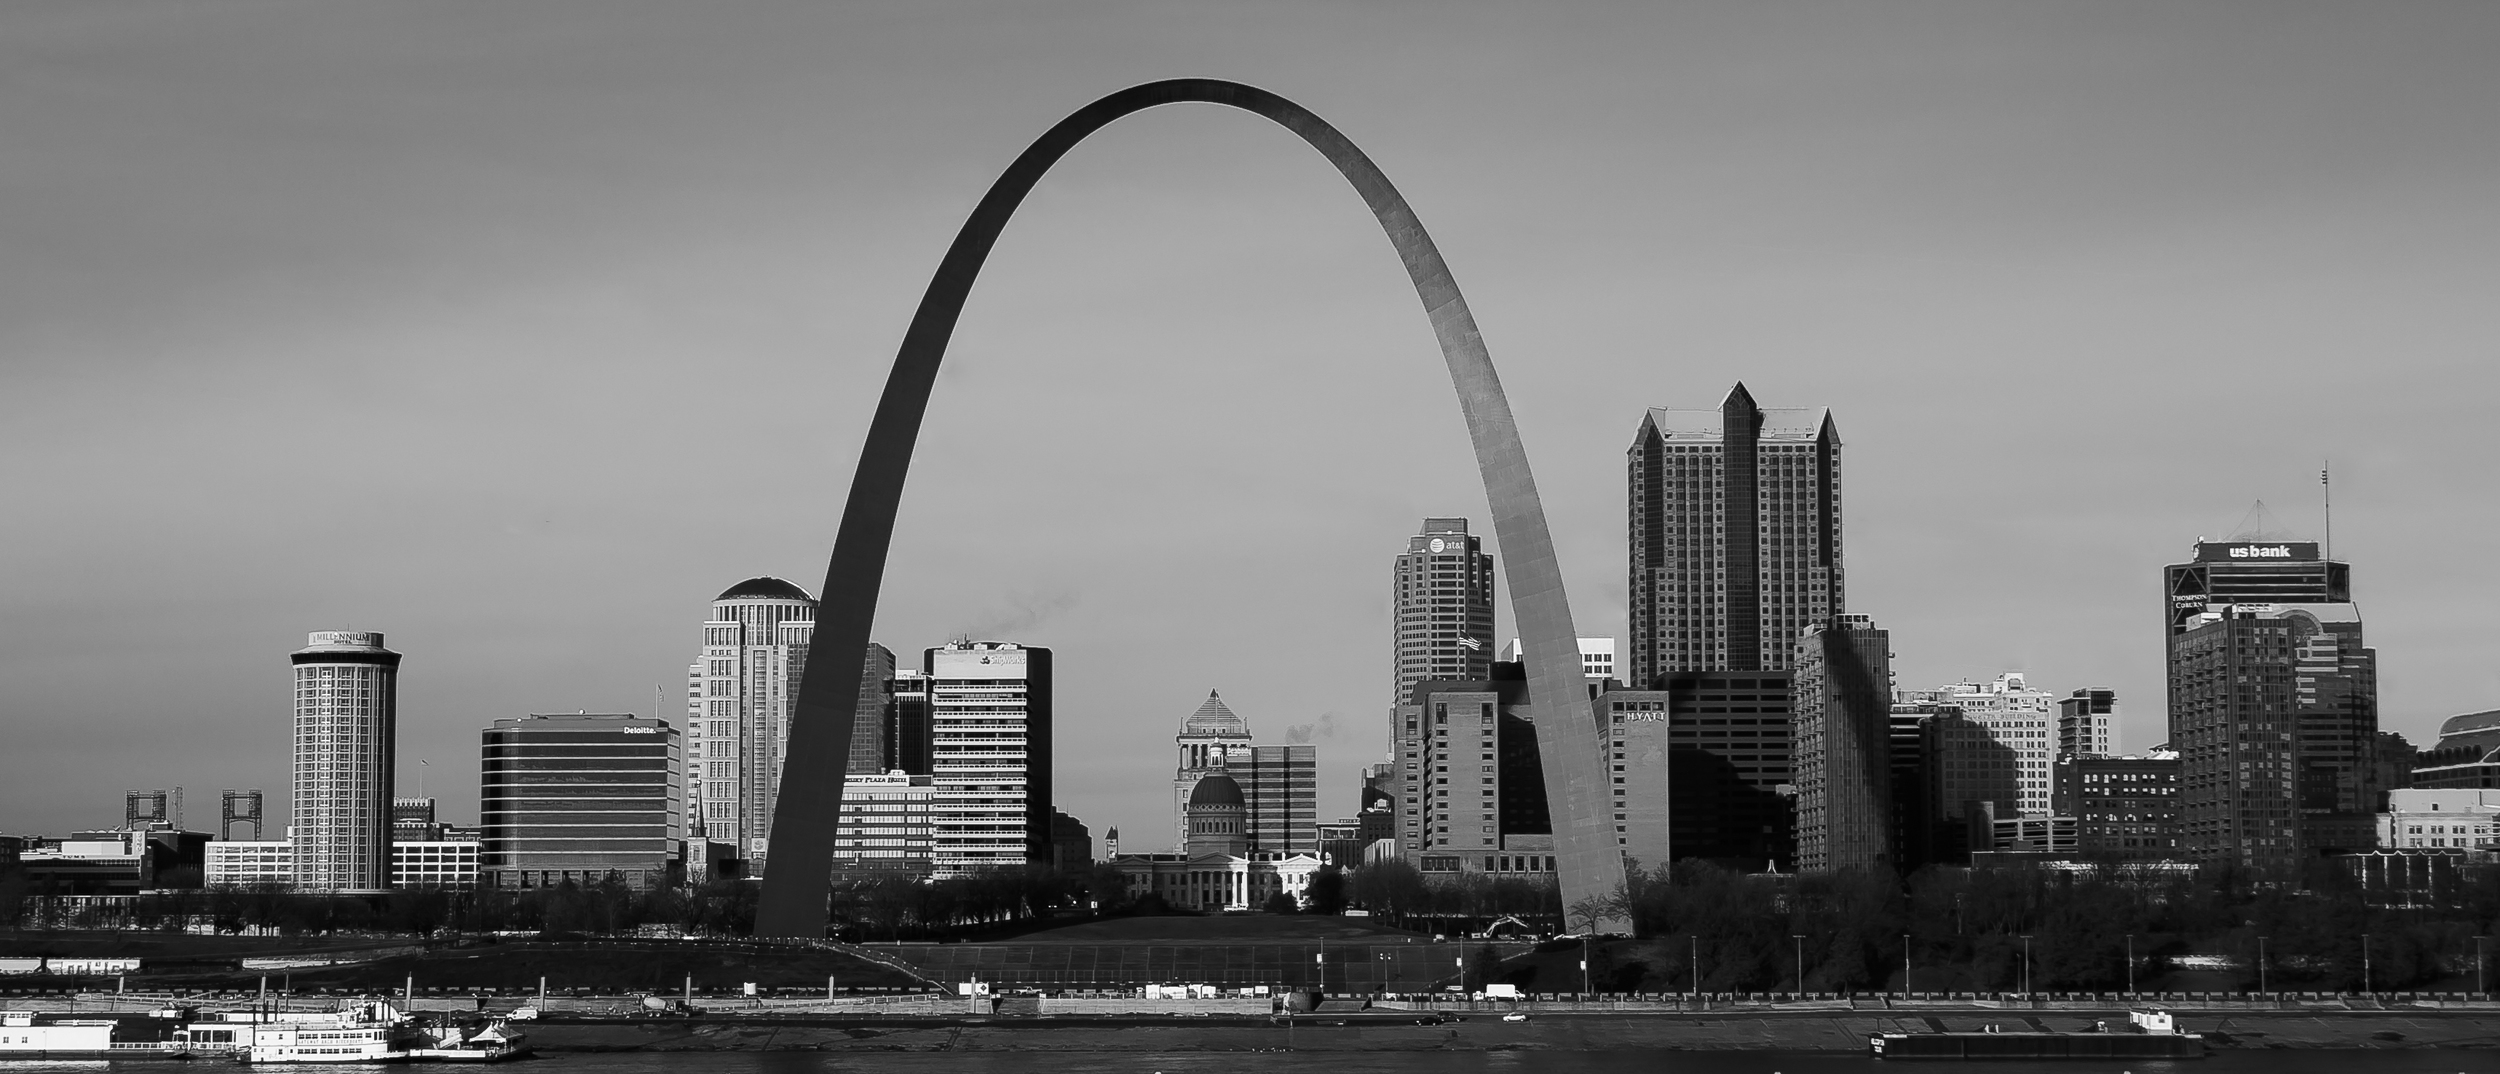 Here is a shot of the Gateway Arch from the Malcom Martin Park in East St. Louis, IL